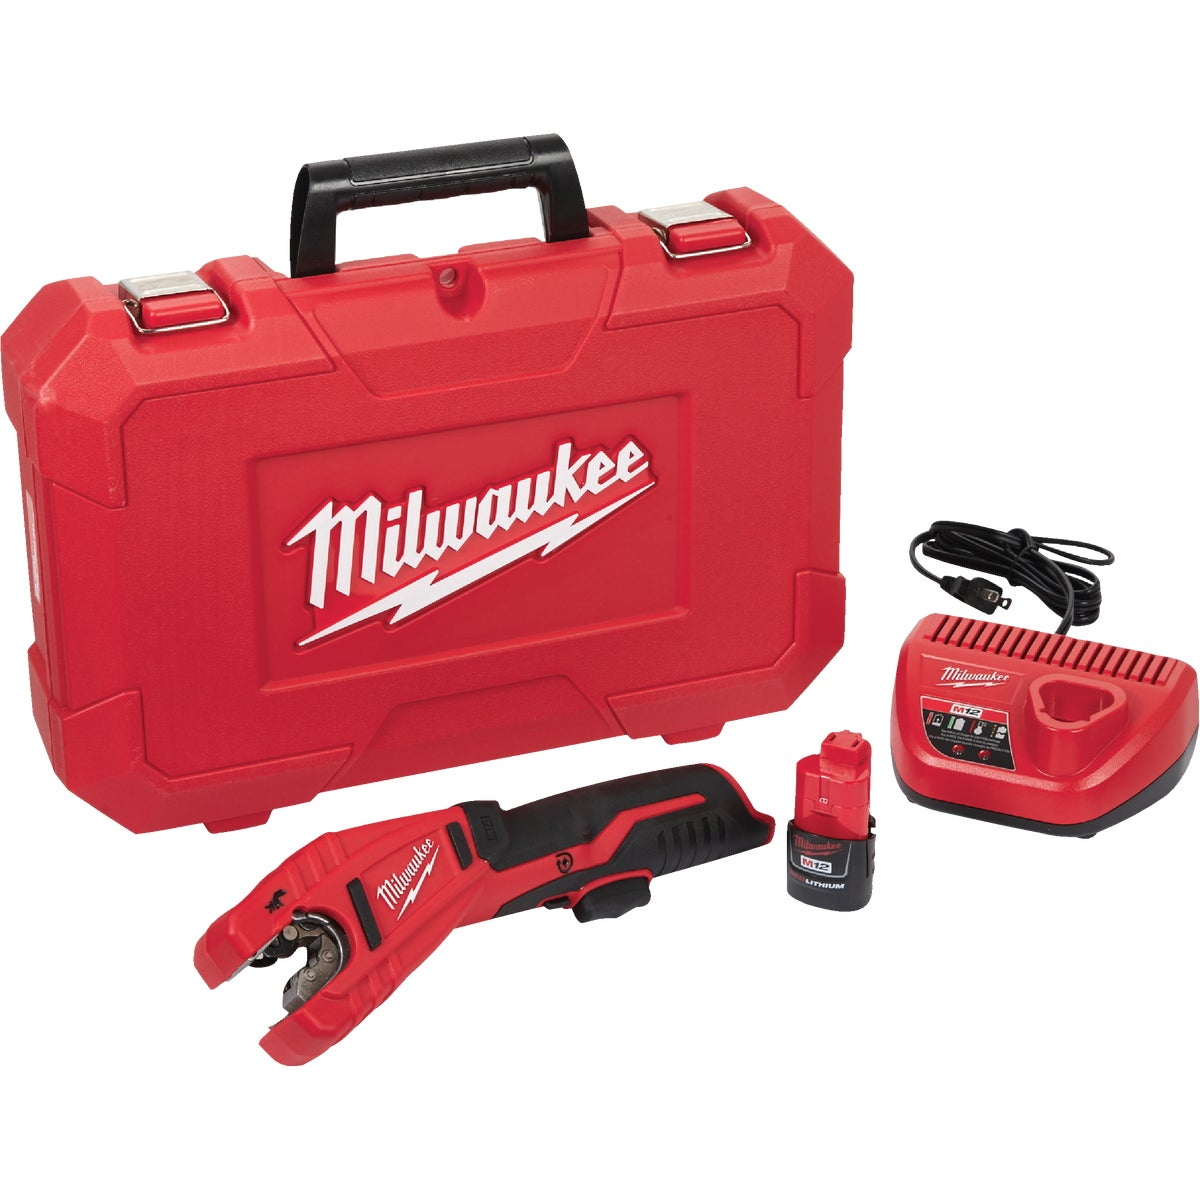 12V PIPE CUTTER - 247121 by Milwaukee Elec Tool